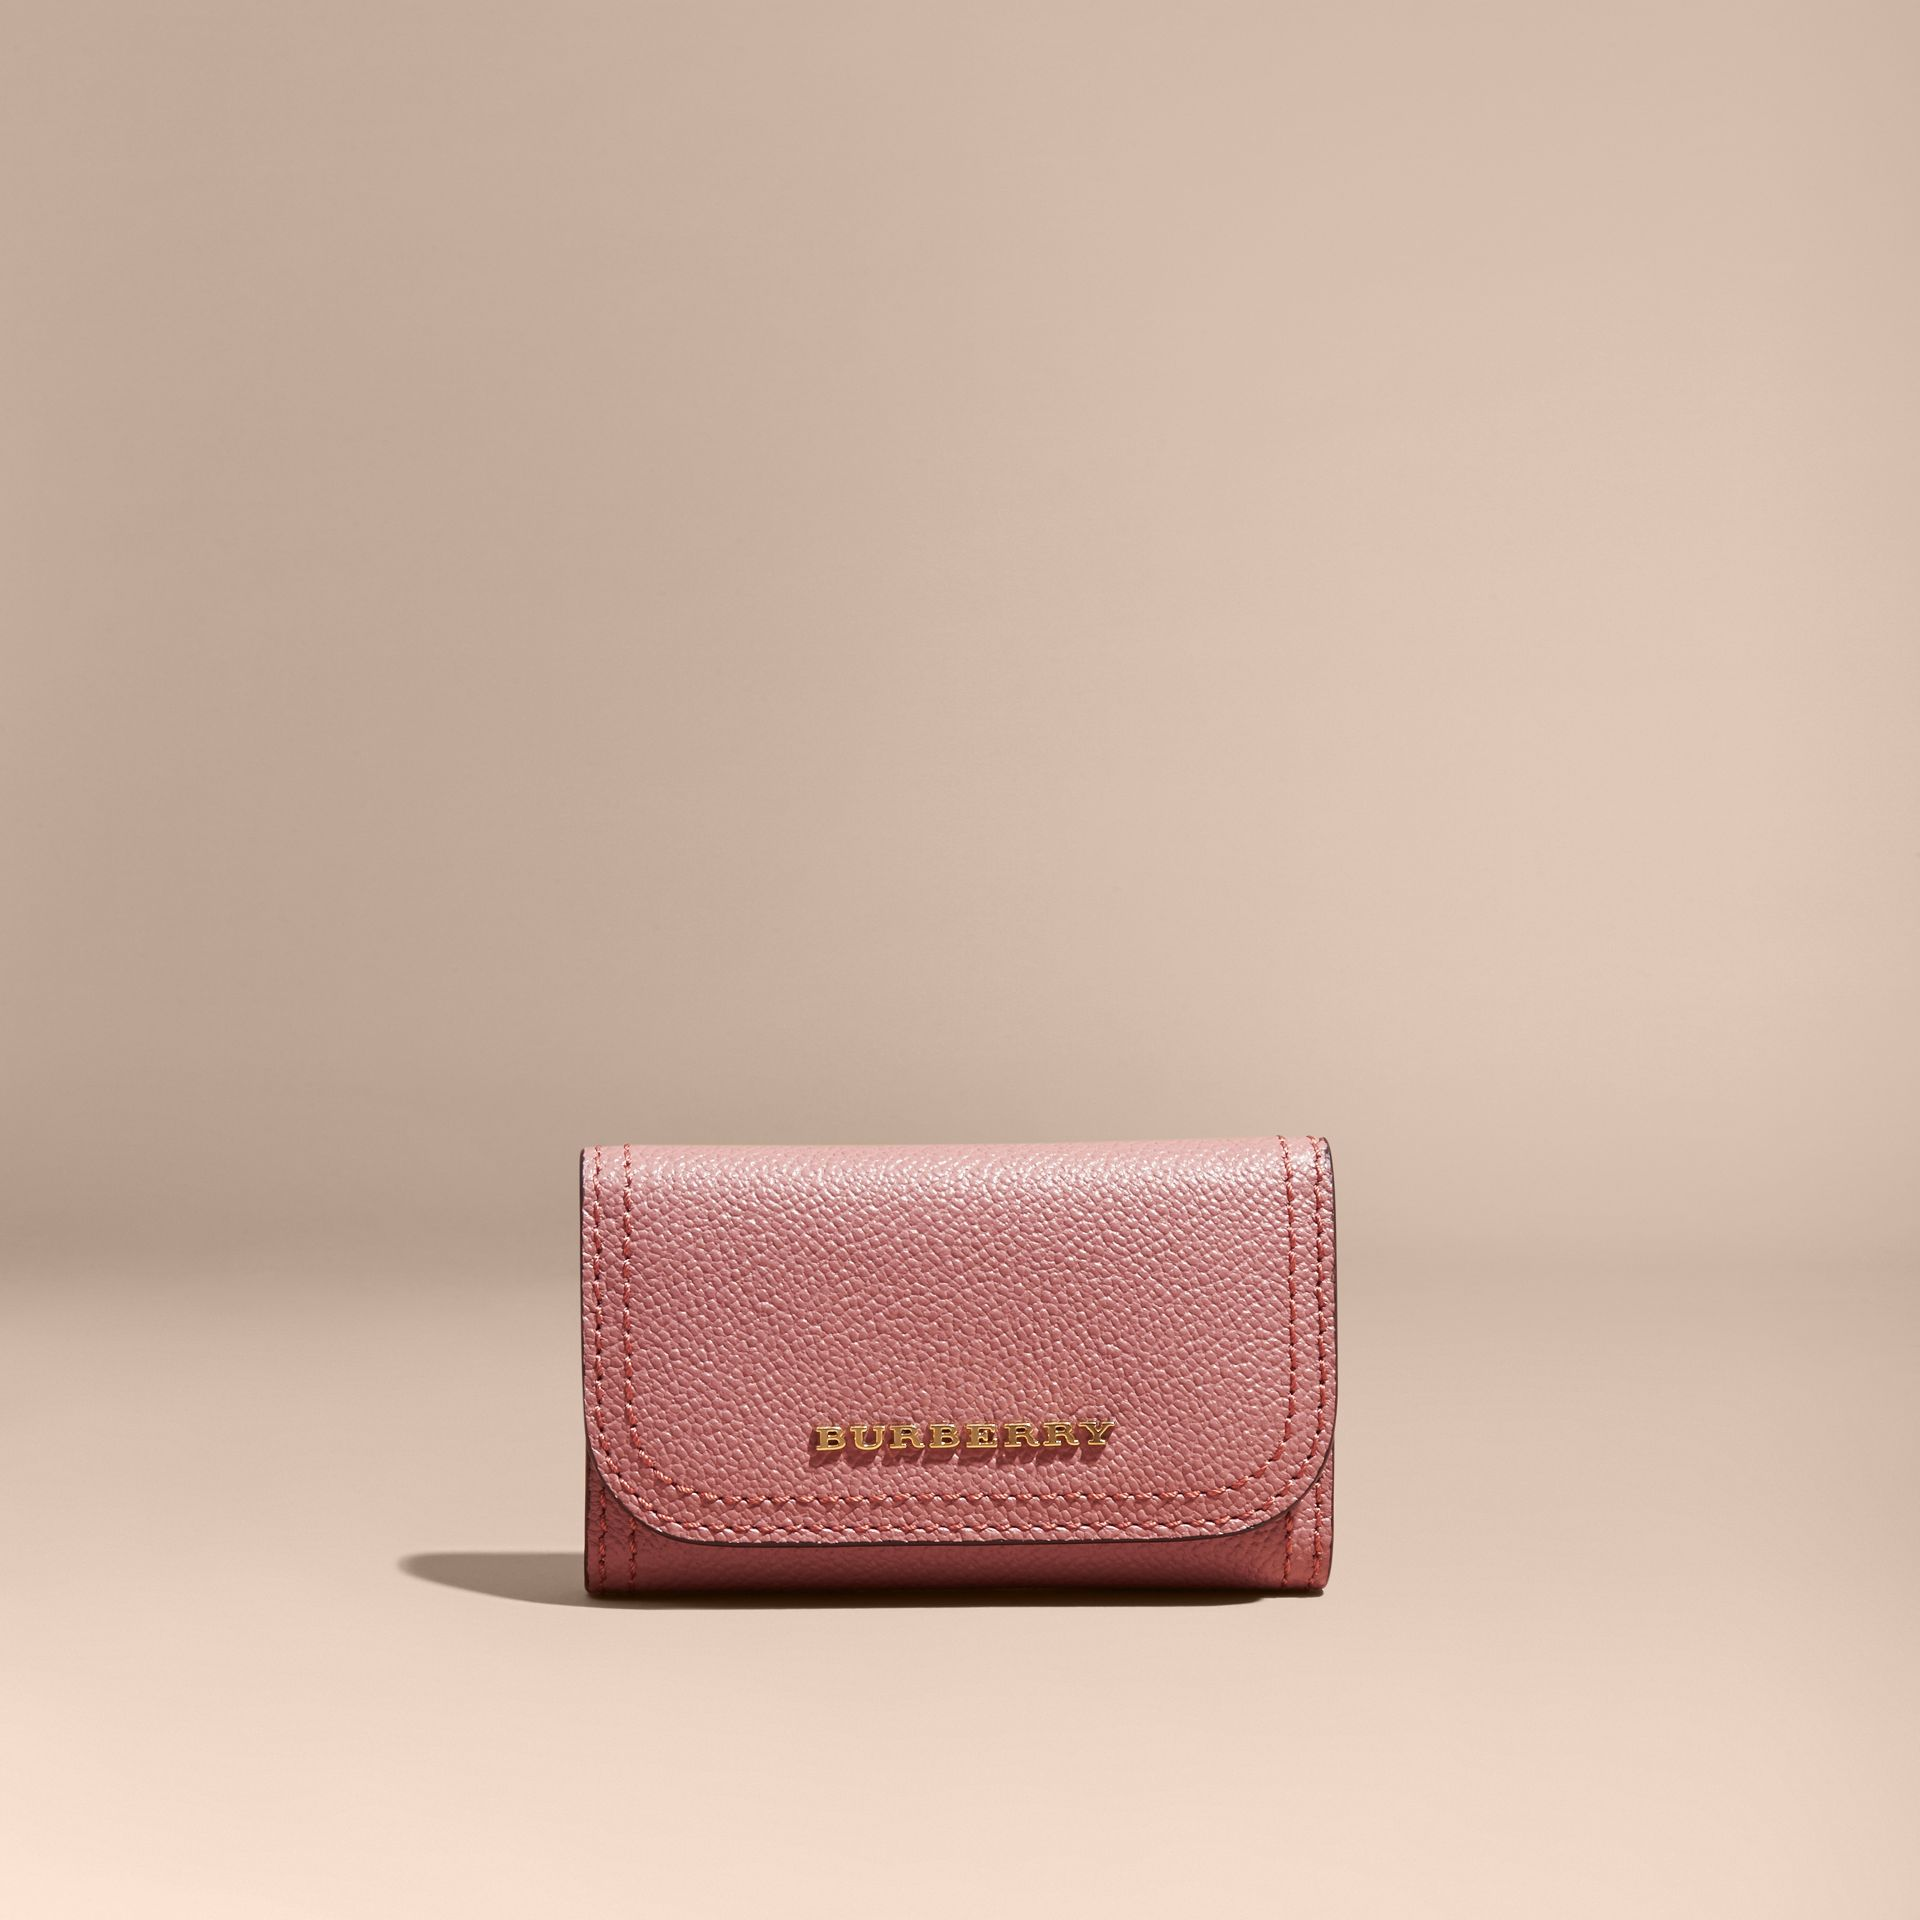 Grainy Leather Key Holder in Dusty Pink - Women | Burberry - gallery image 6